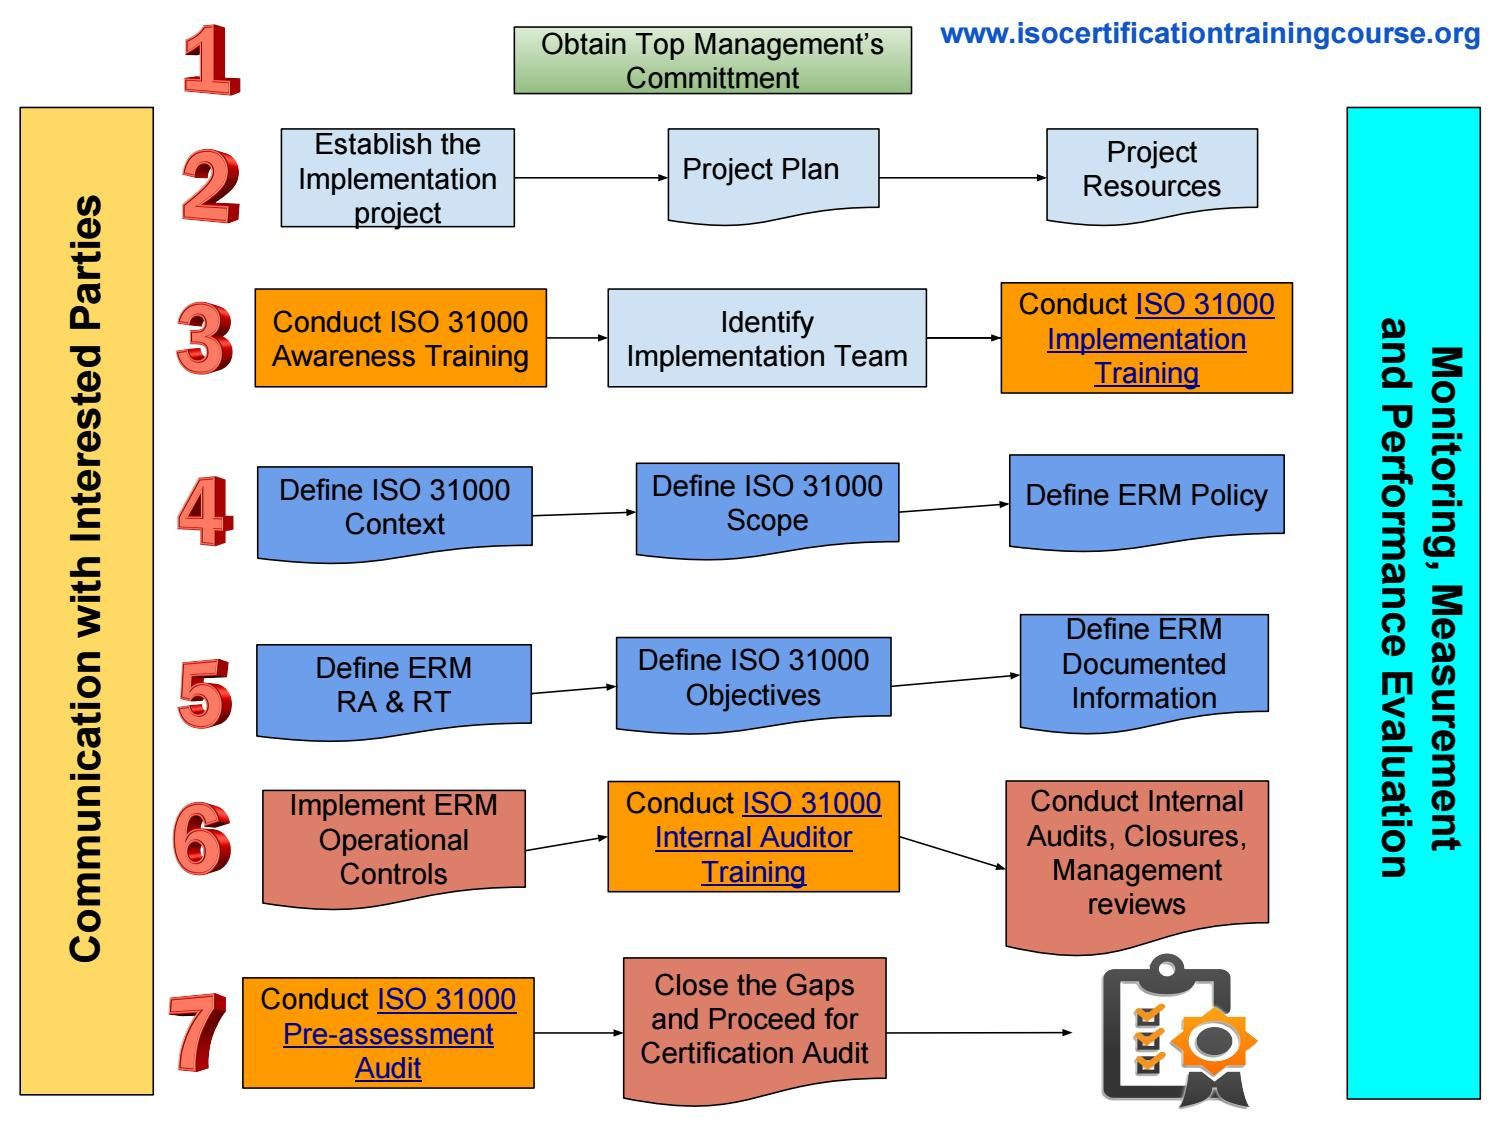 How To Prepare For Iso 31000 Certification Process Step By Step For Auditee Organizations Risk Management Strategies Change Management Risk Management